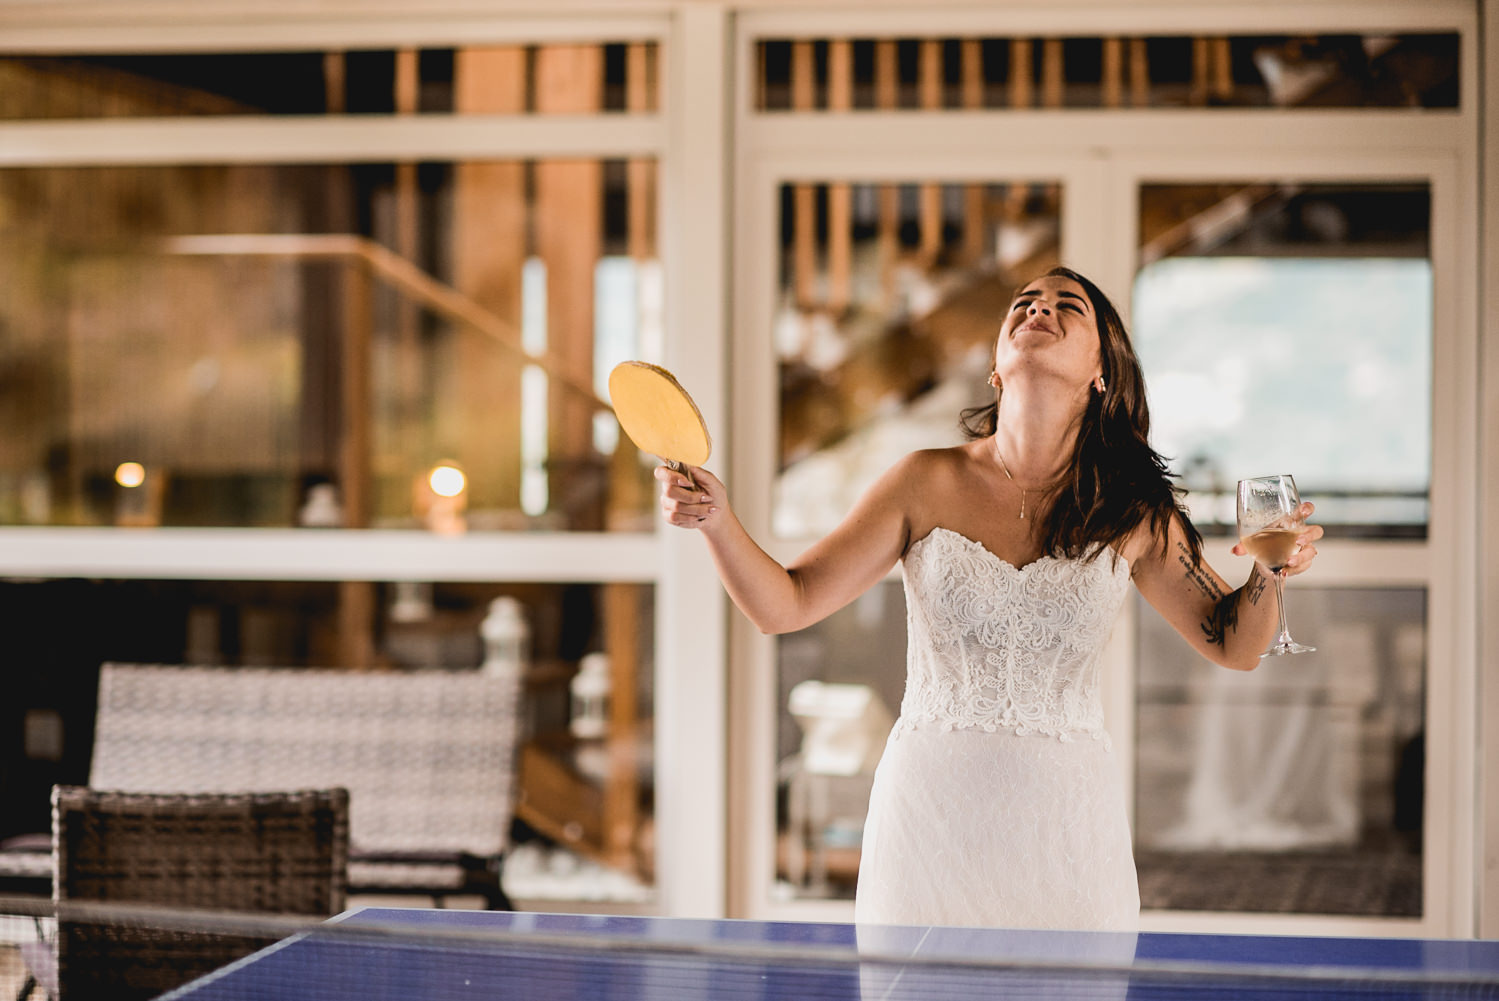 ping pong on our wedding day